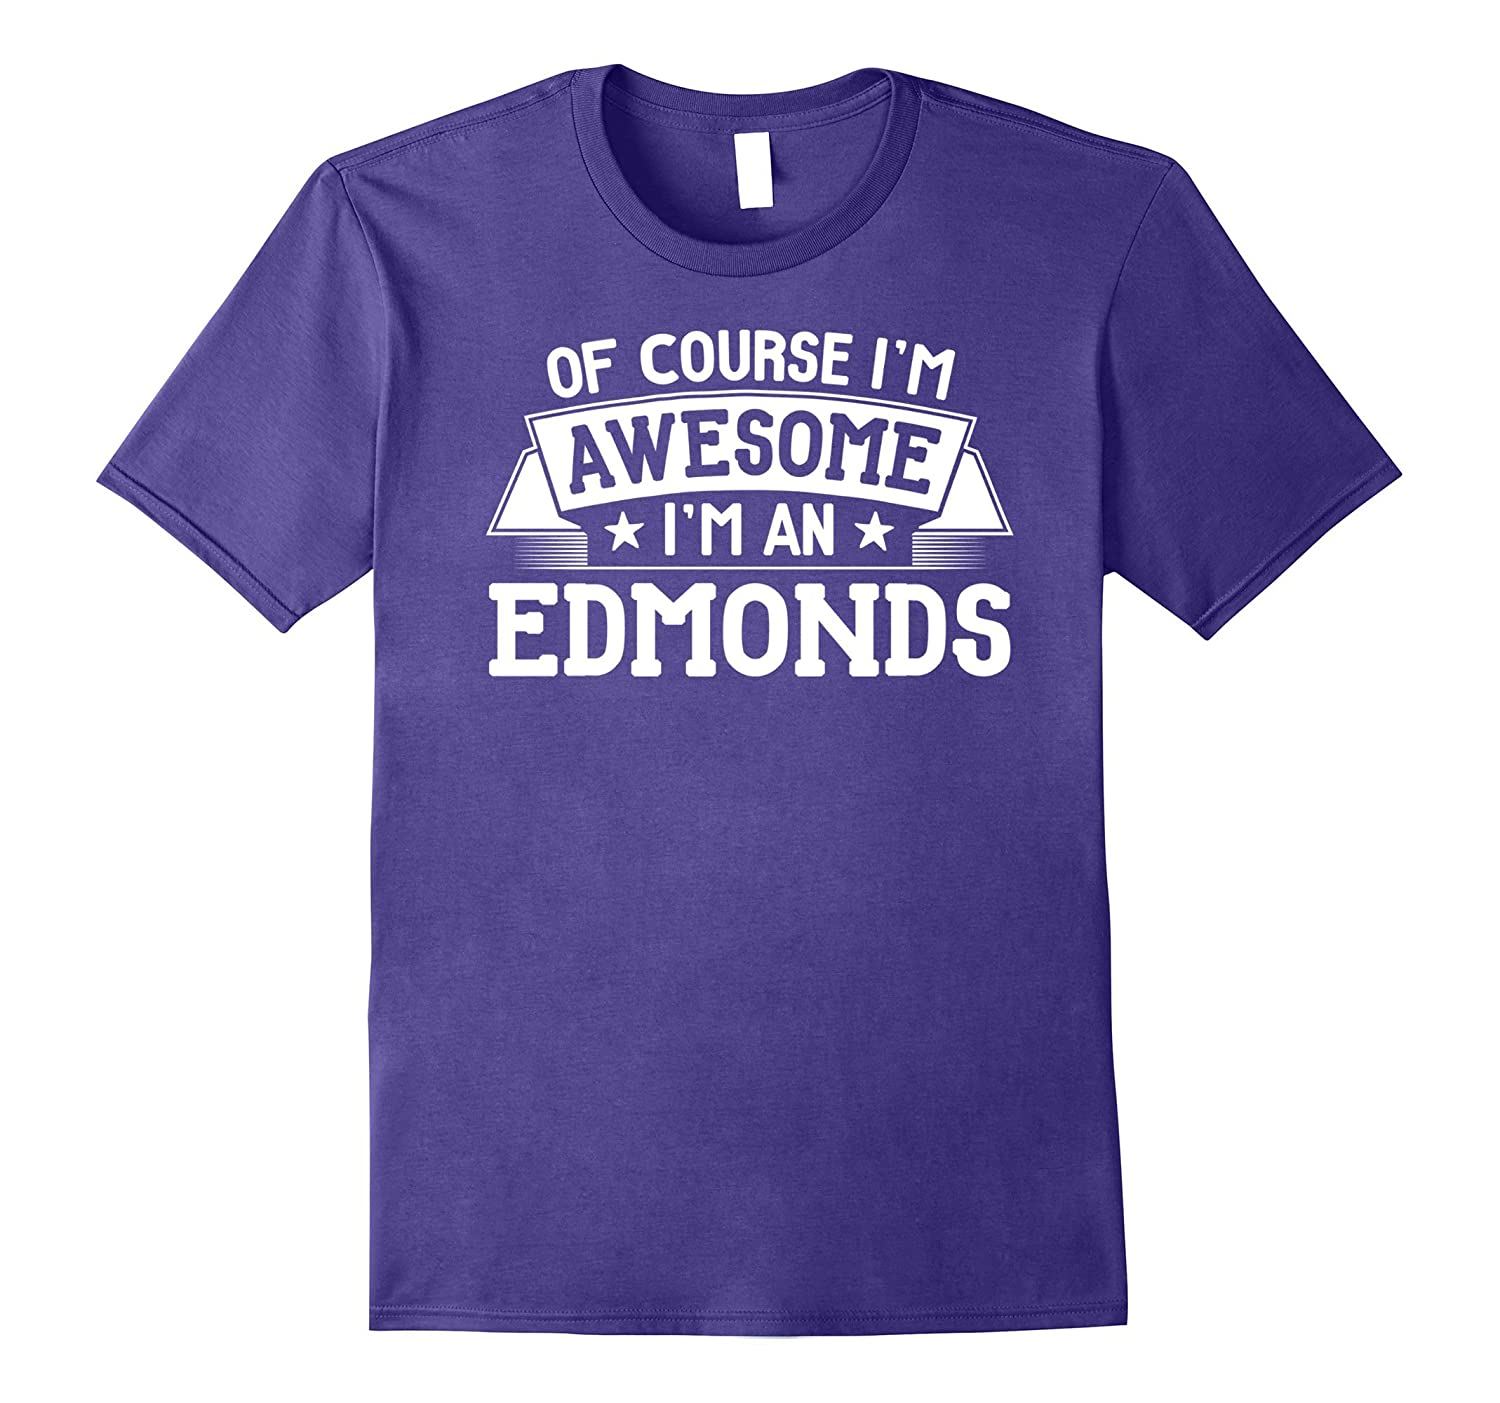 Edmonds T-Shirt First or Last Name - Of Course I'm Awesome!-TH